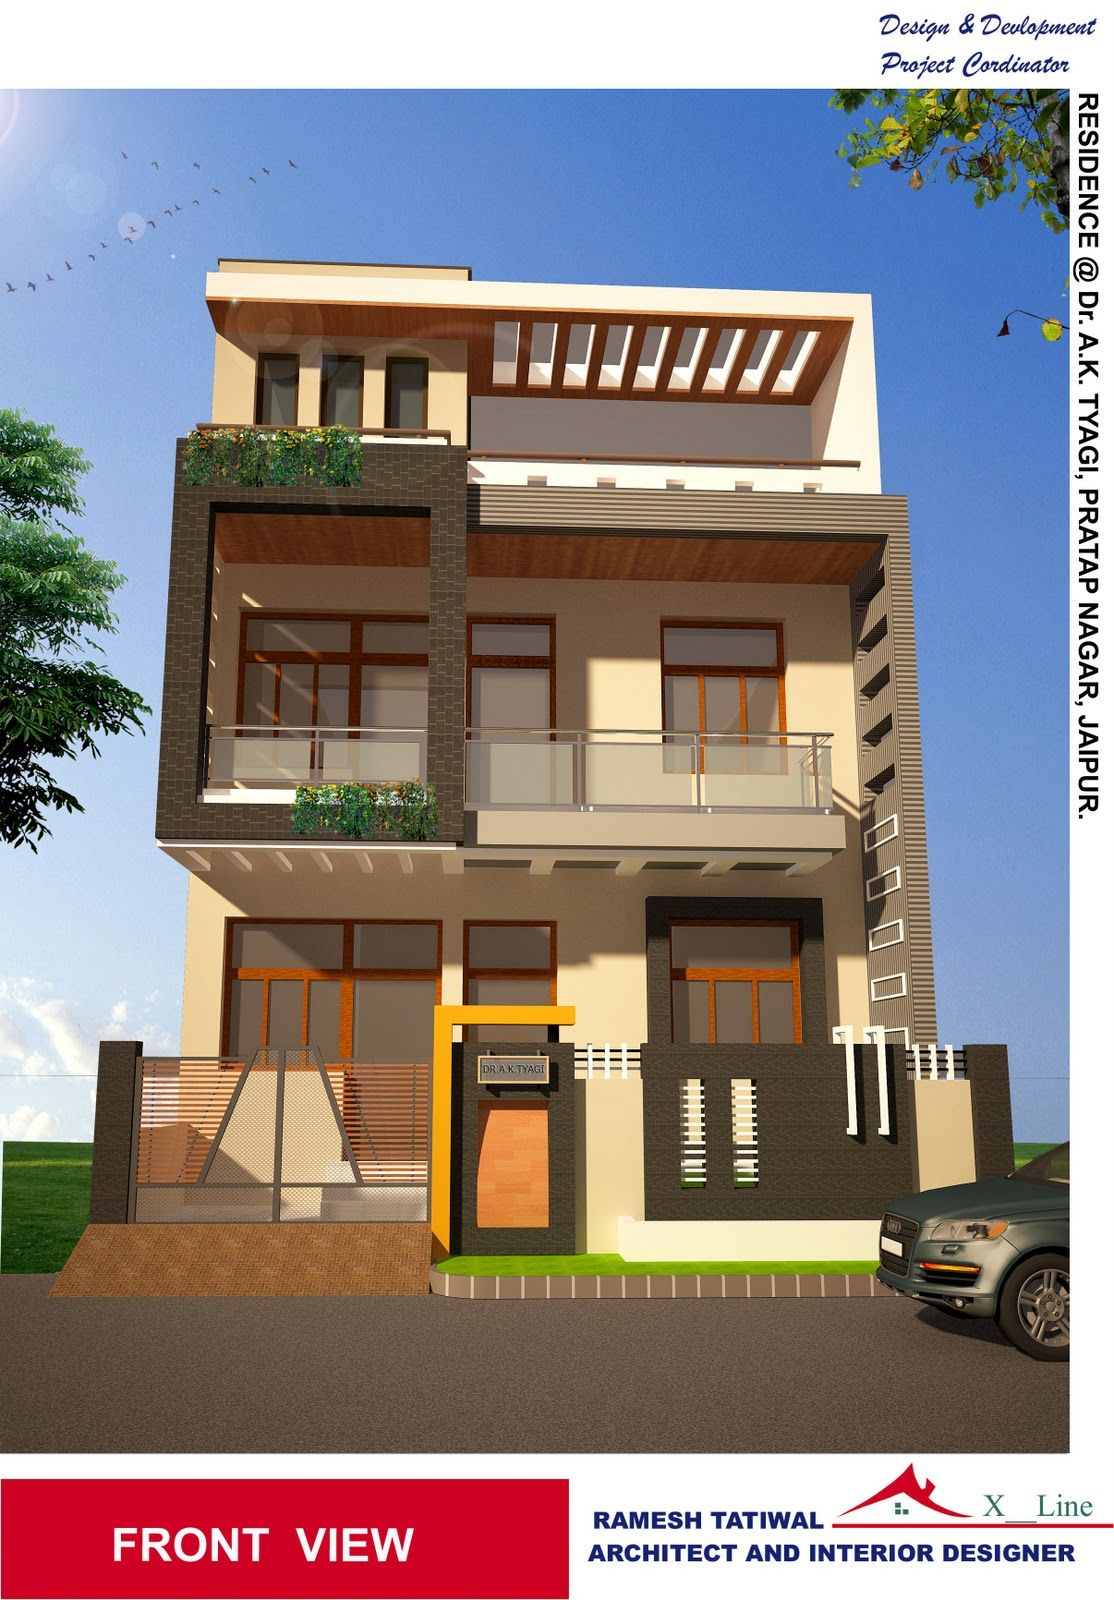 housedesigns modern indian home architecture design from